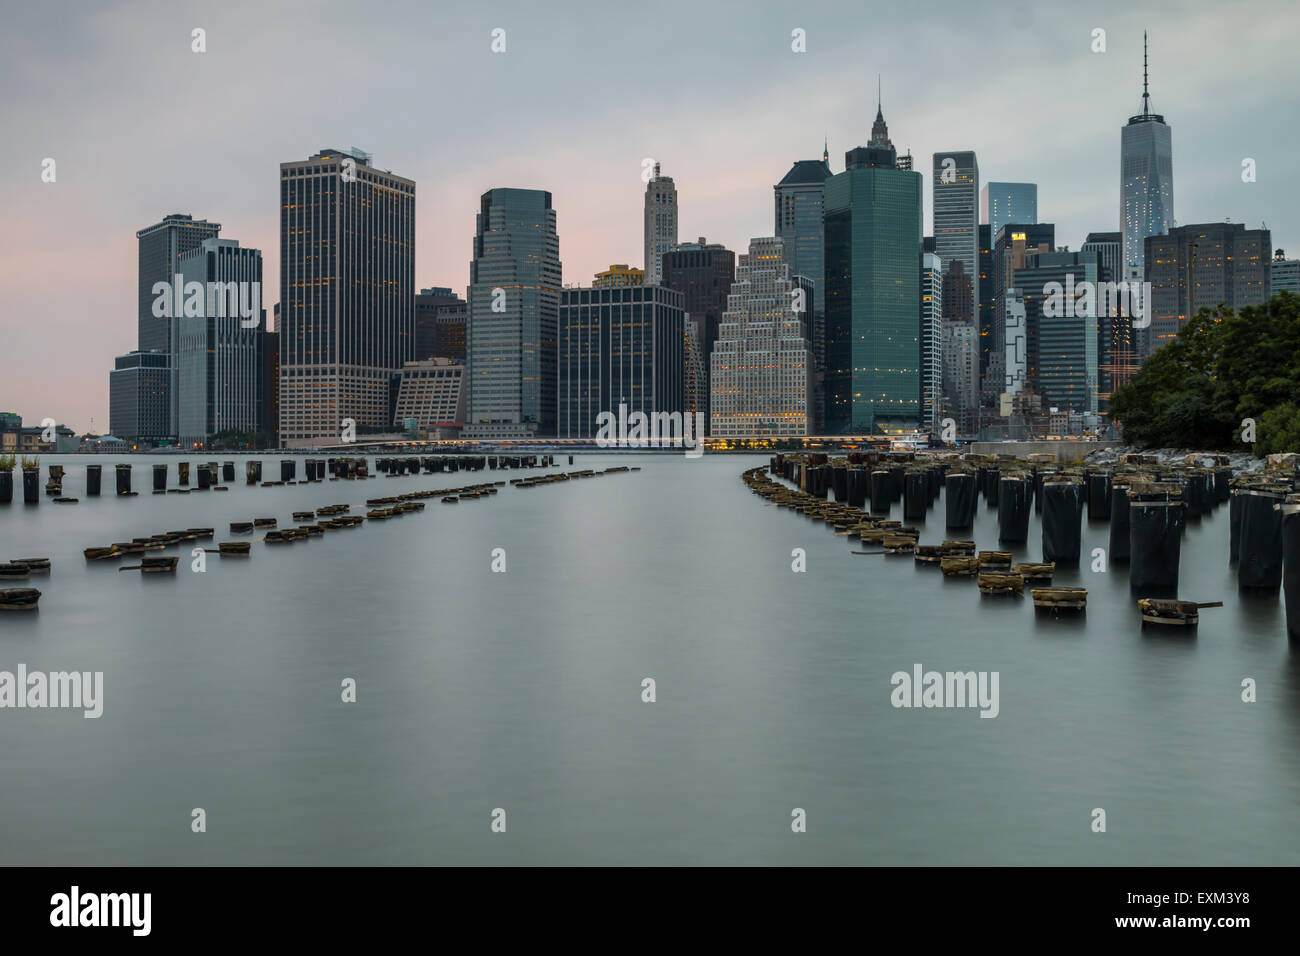 New York City seen from Brooklyn Bridge Park - Stock Image